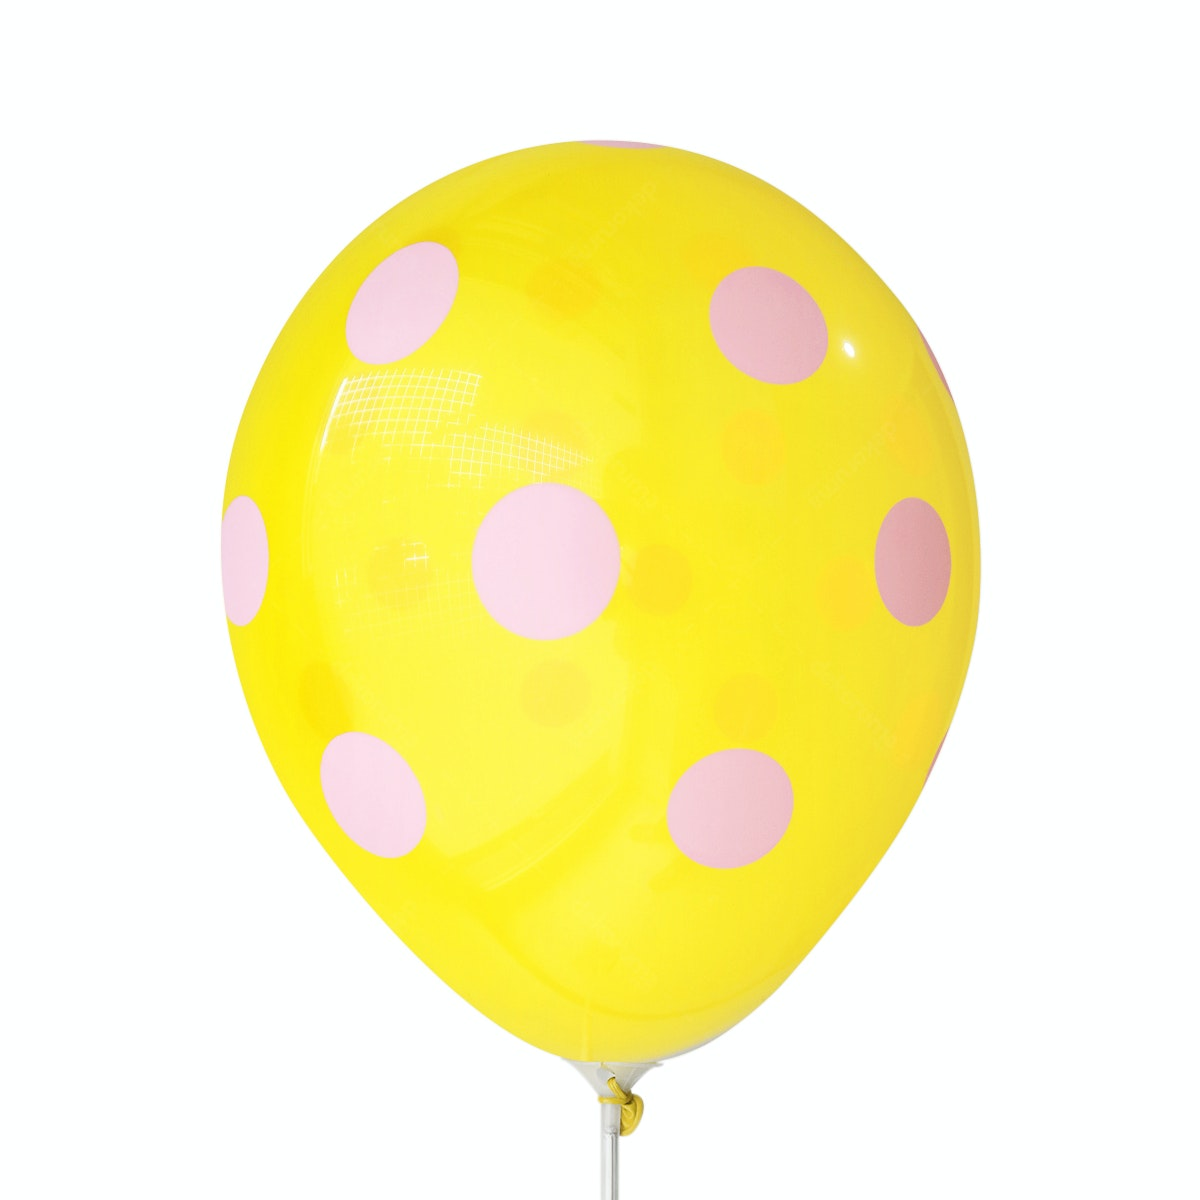 Adalima Balloon Balloon Polkadot Lemon Yellow Pink QQ